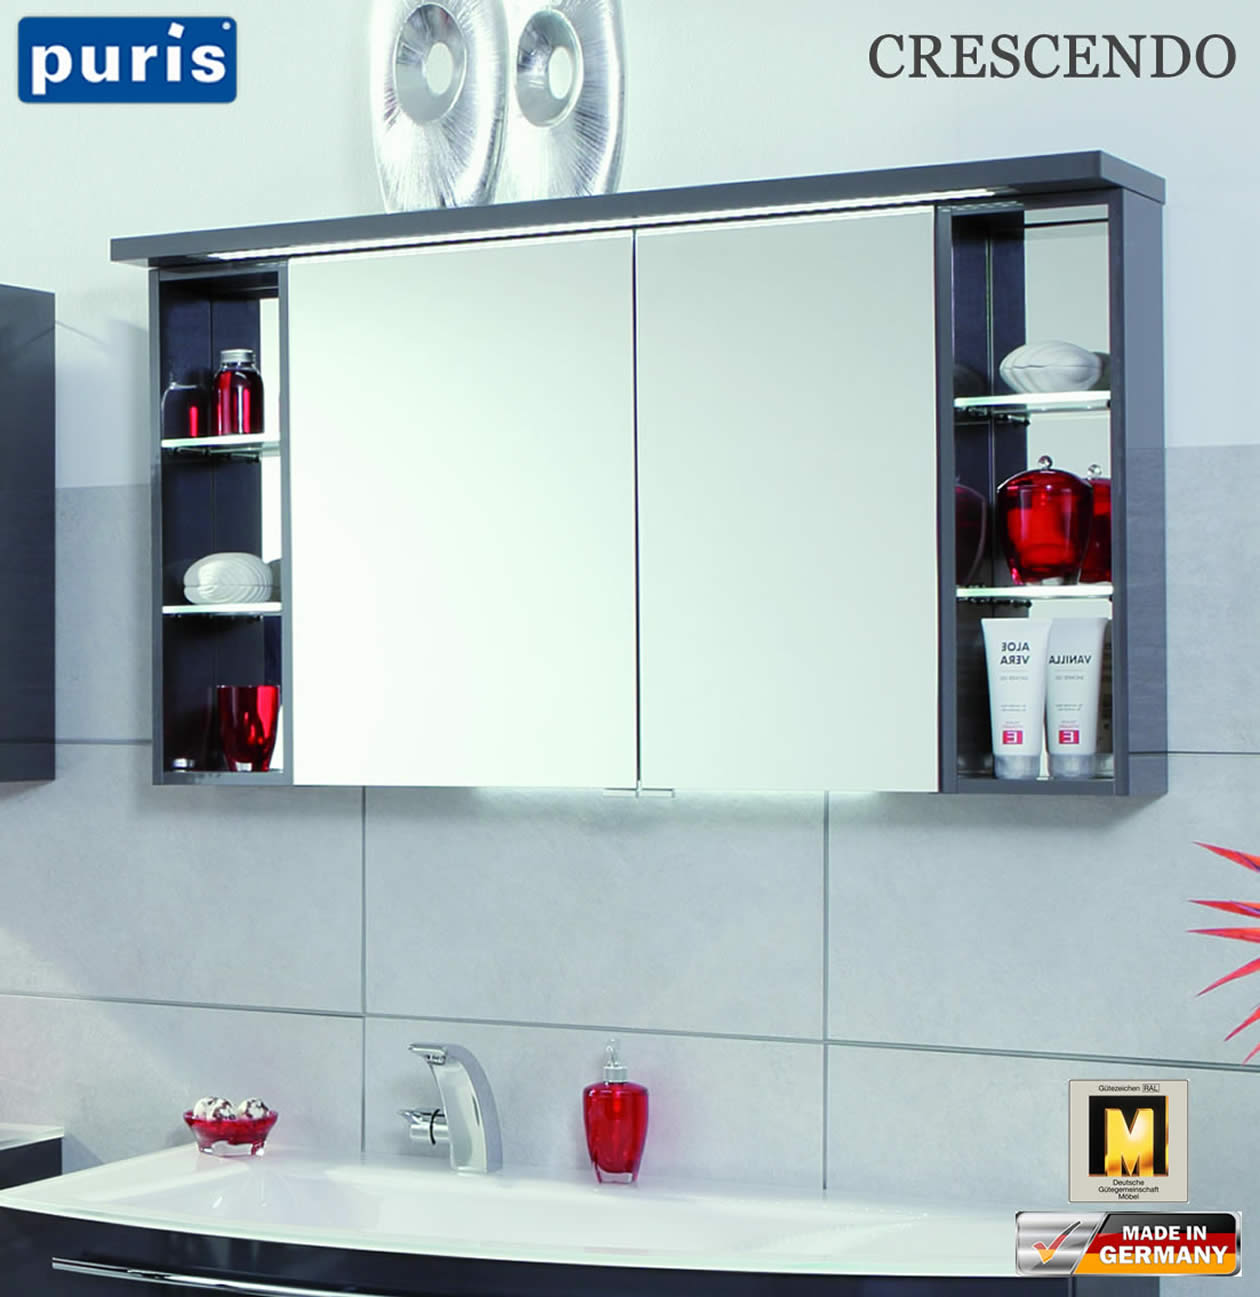 puris crescendo led spiegelschrank 120 cm s2a431226r impuls home. Black Bedroom Furniture Sets. Home Design Ideas